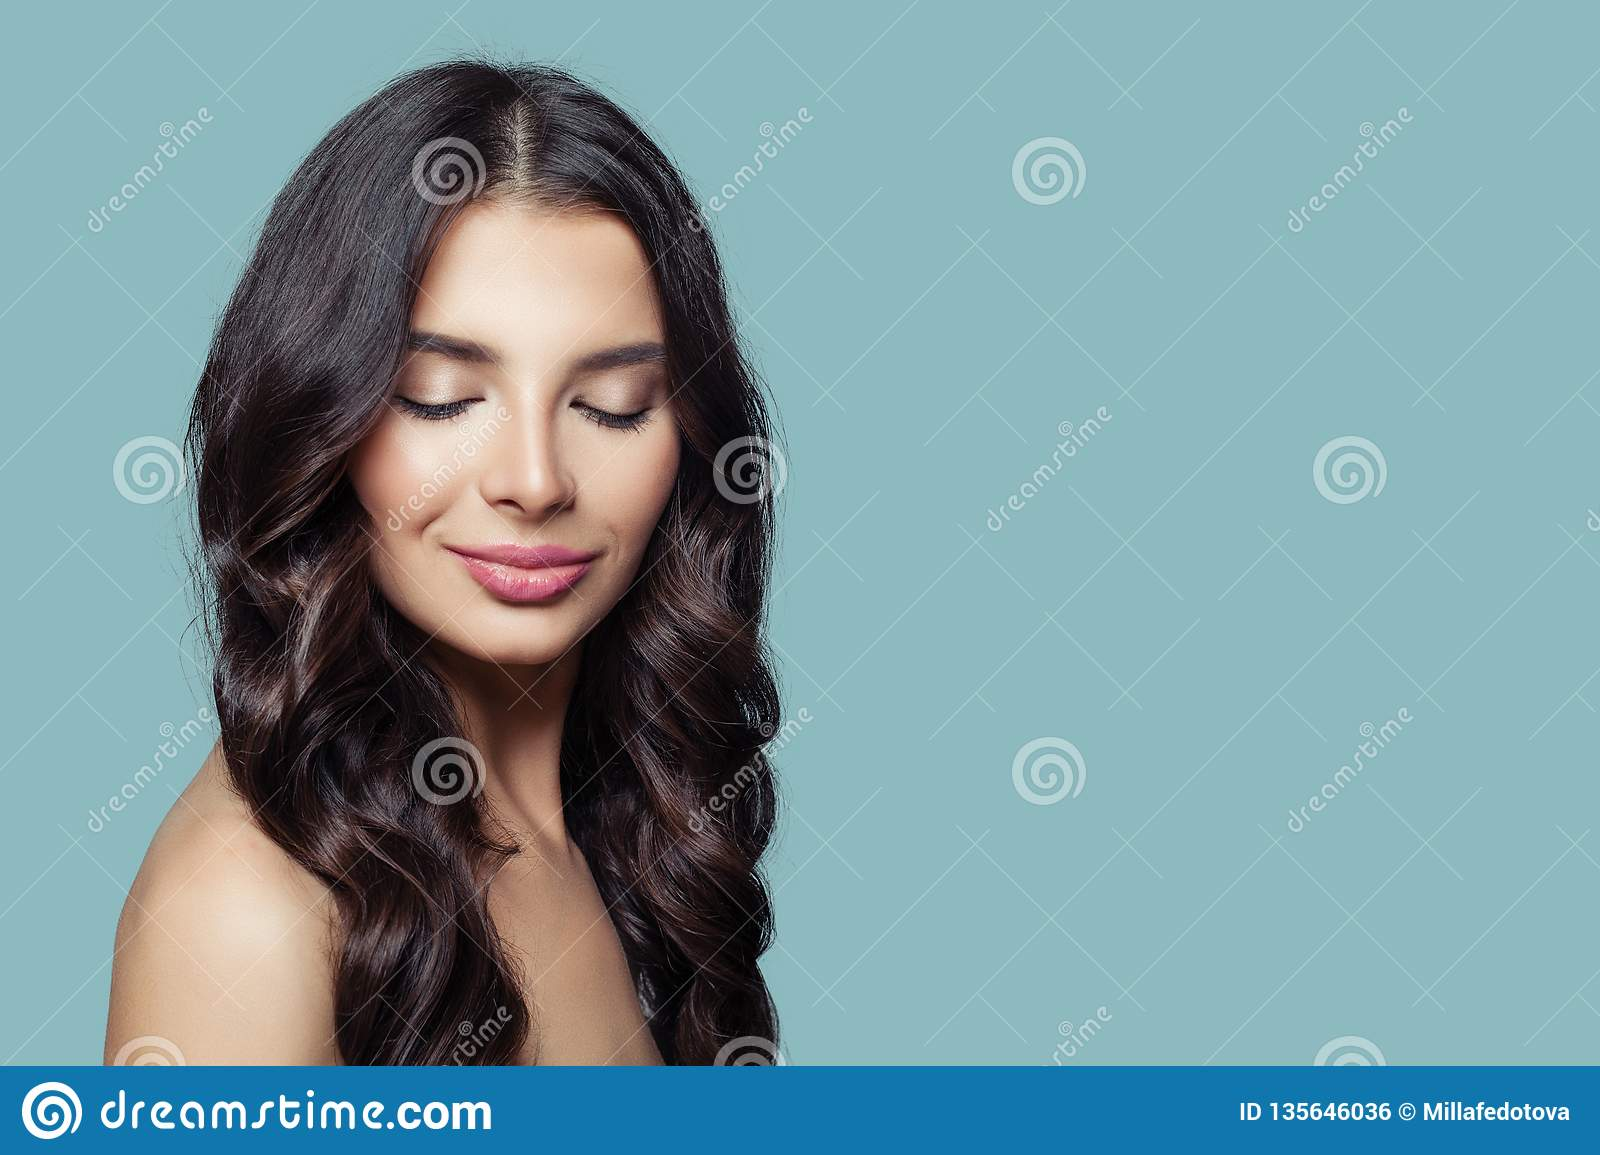 Young pretty woman with long healthy hair and natural makeup on blue background